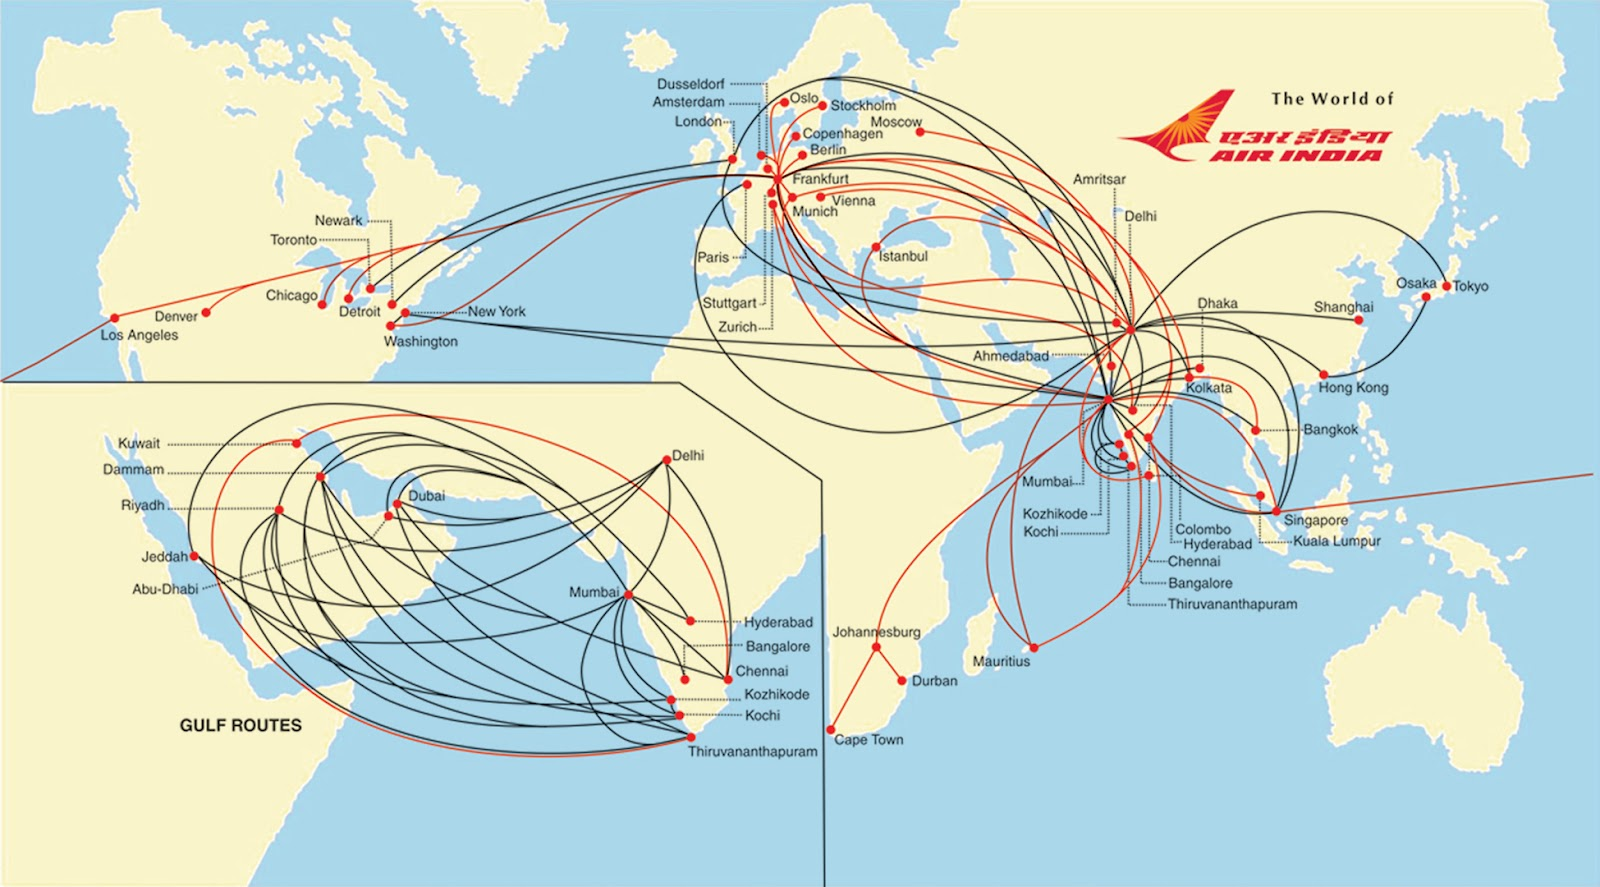 The Timetablist Air India International Routes c 2012